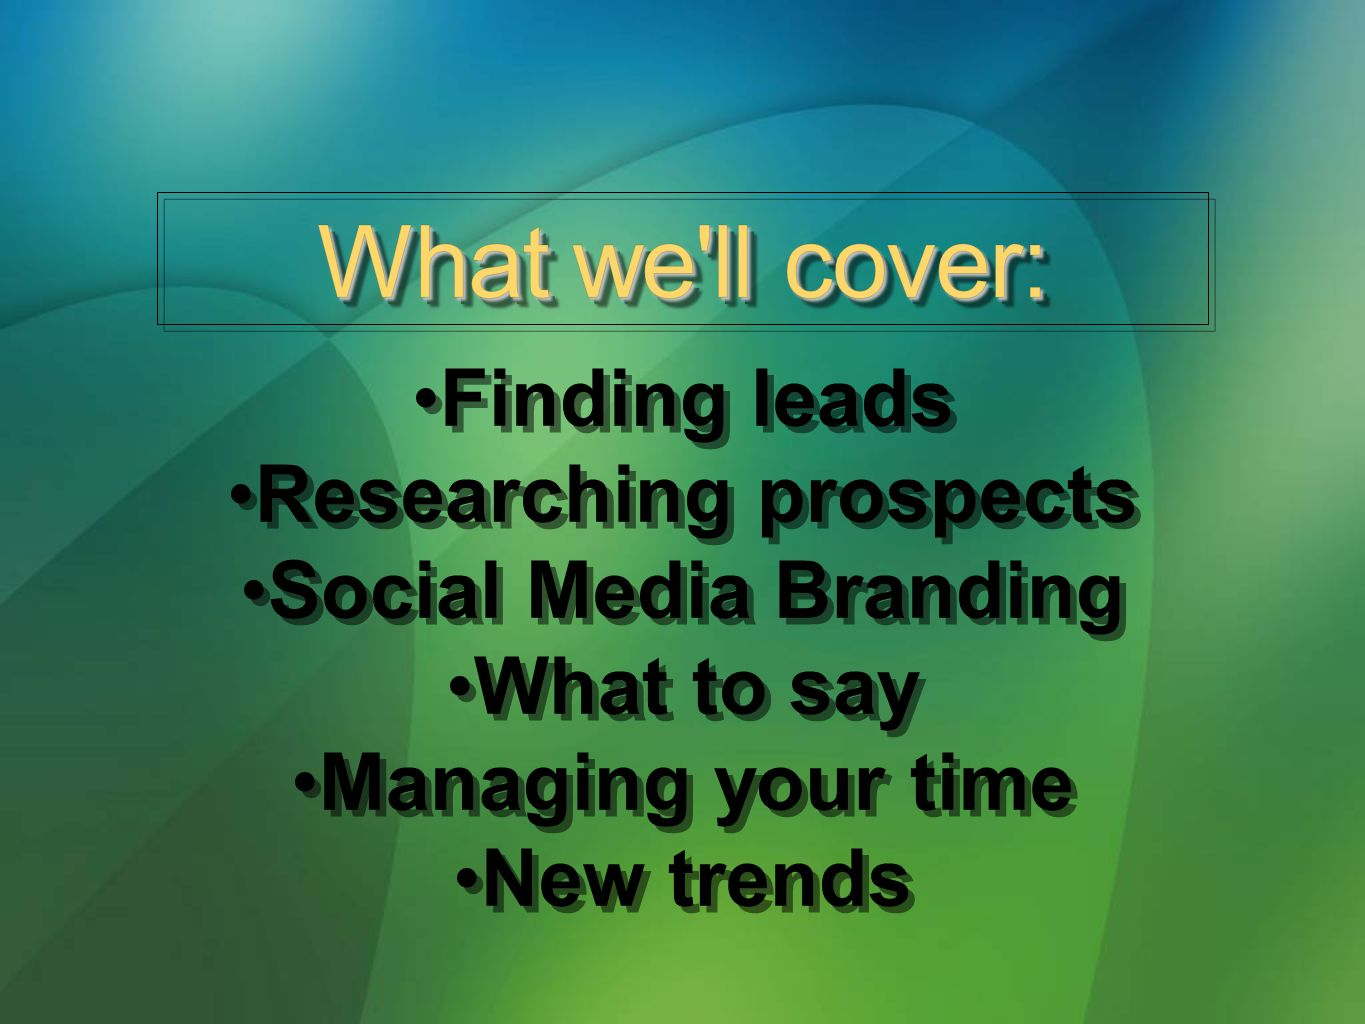 Finding leads Researching prospects Social Media Branding What to say Managing your time New trends Finding leads Researching prospects Social Media Branding What to say Managing your time New trends